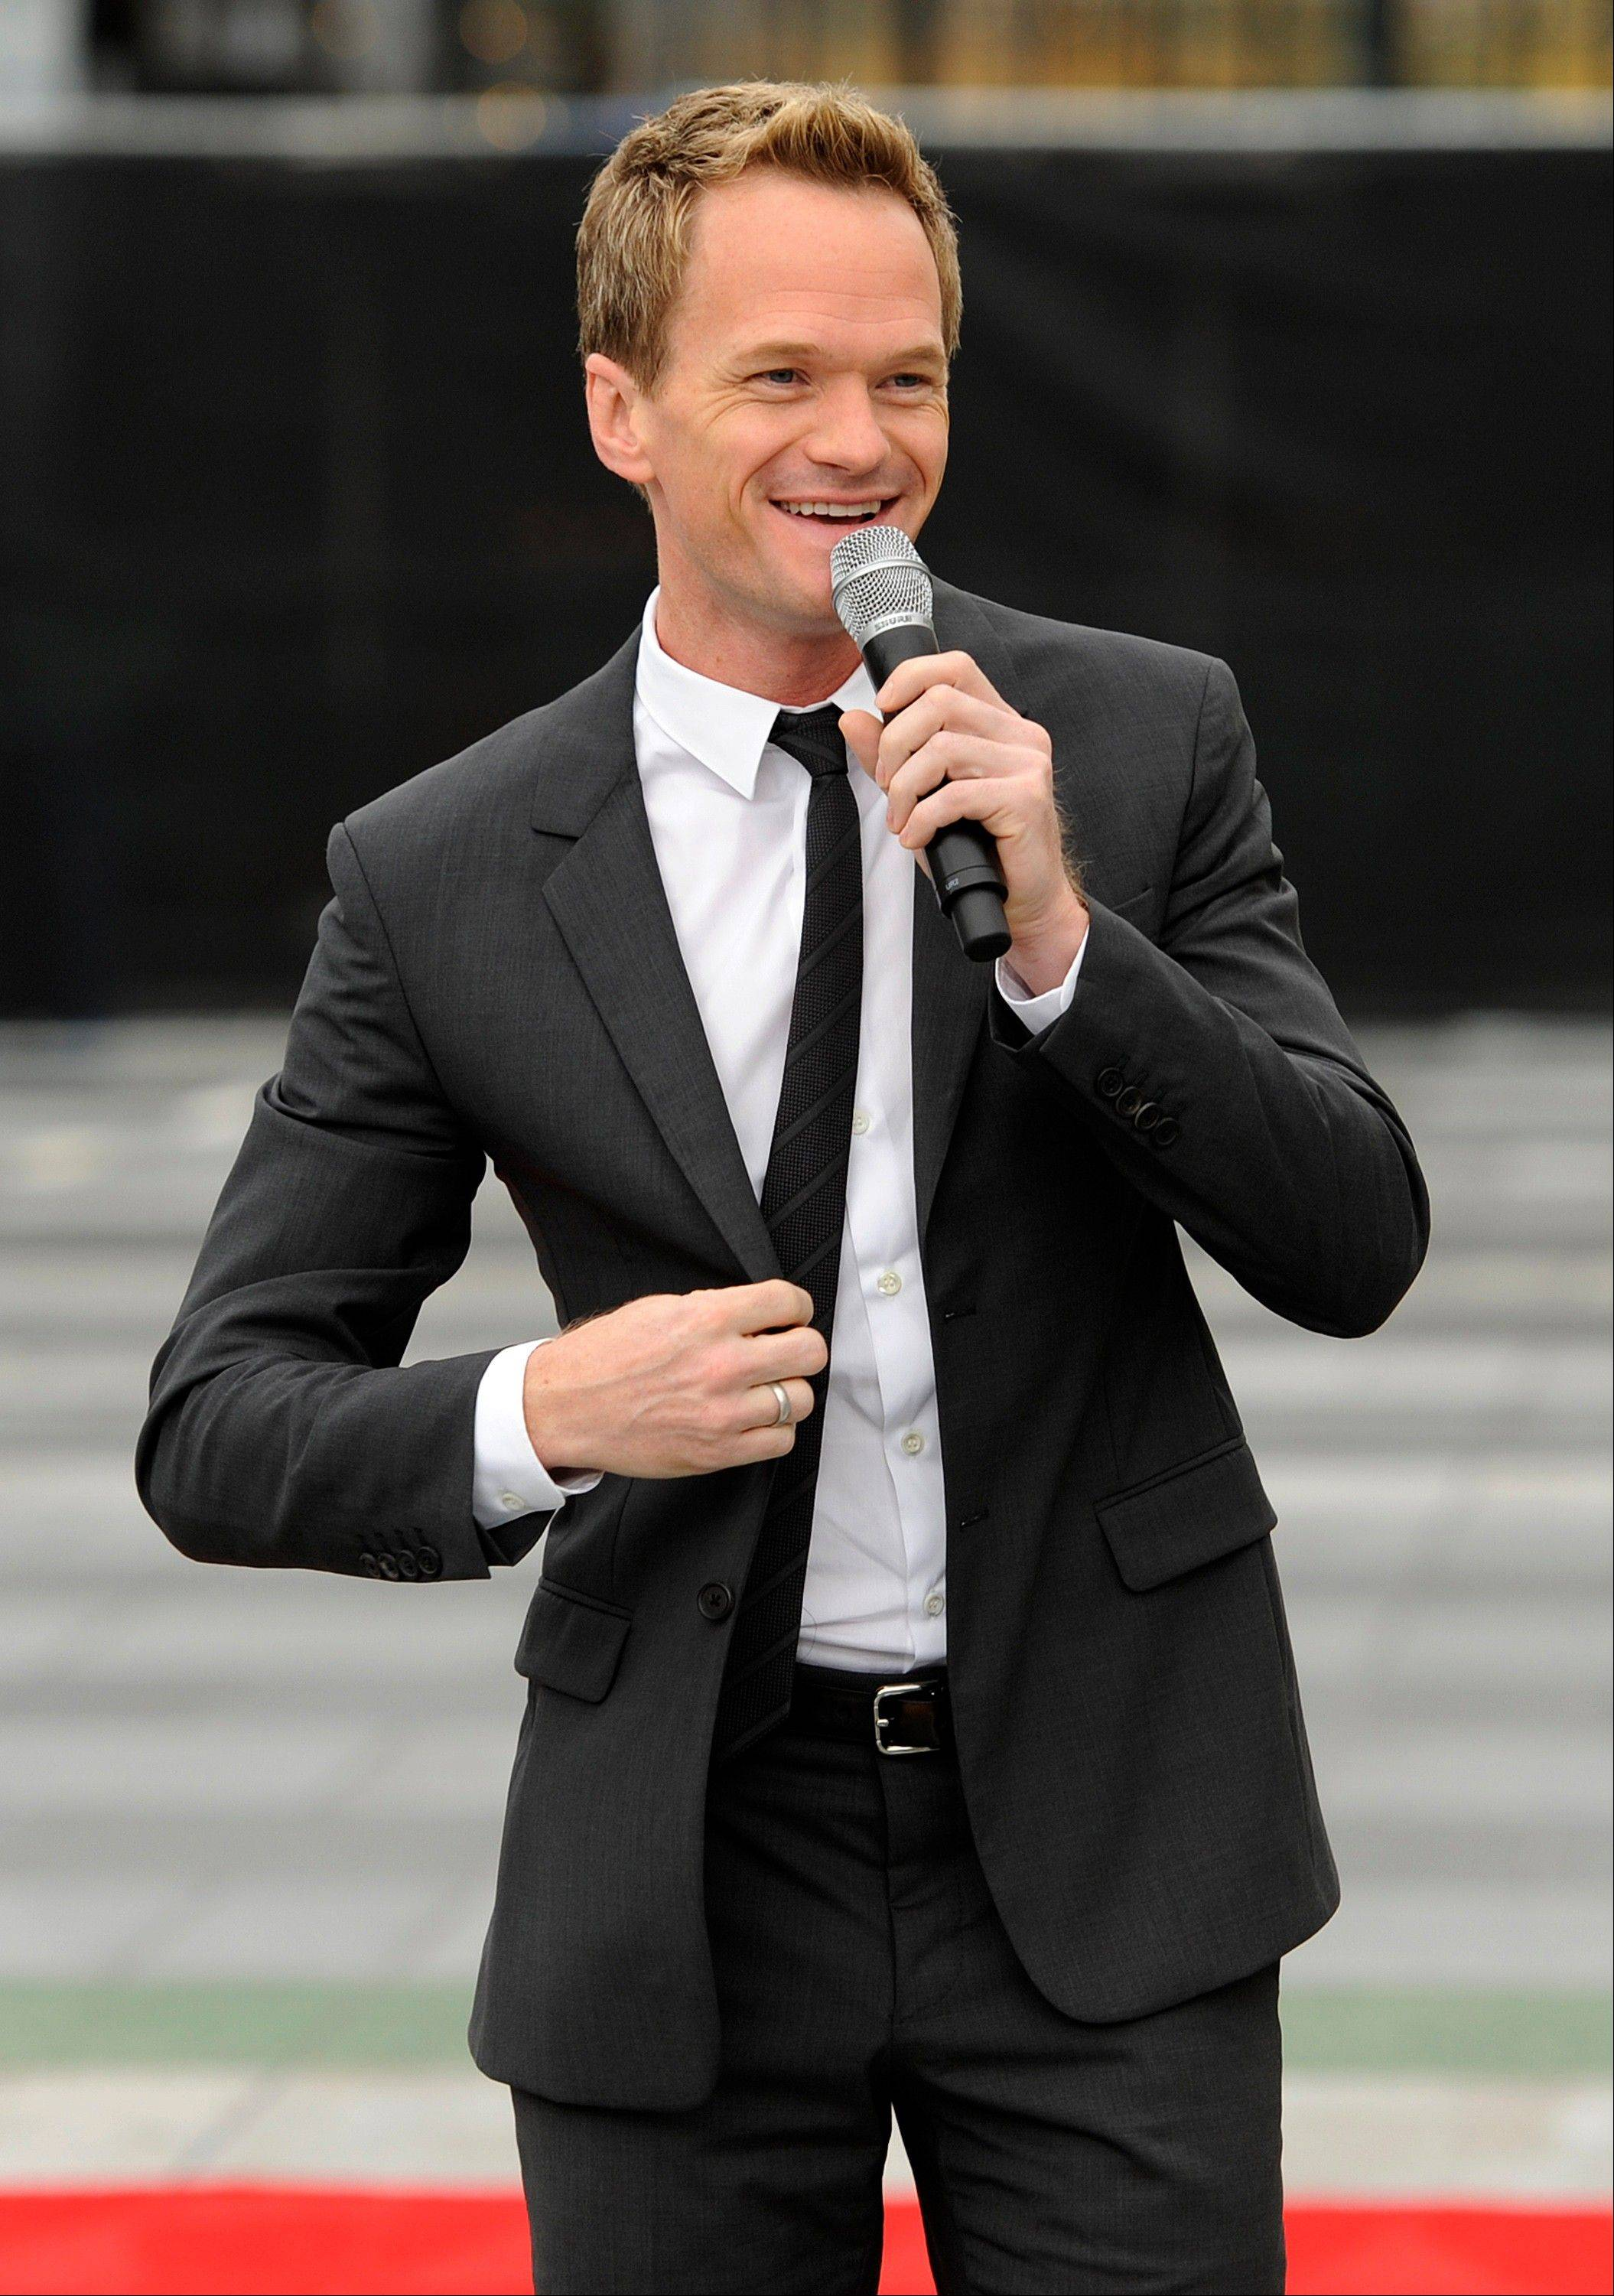 Neil Patrick Harris, host of Sunday's 65th Emmy Awards telecast, addresses reporters during Emmy Awards Press Preview Day on Wednesday.